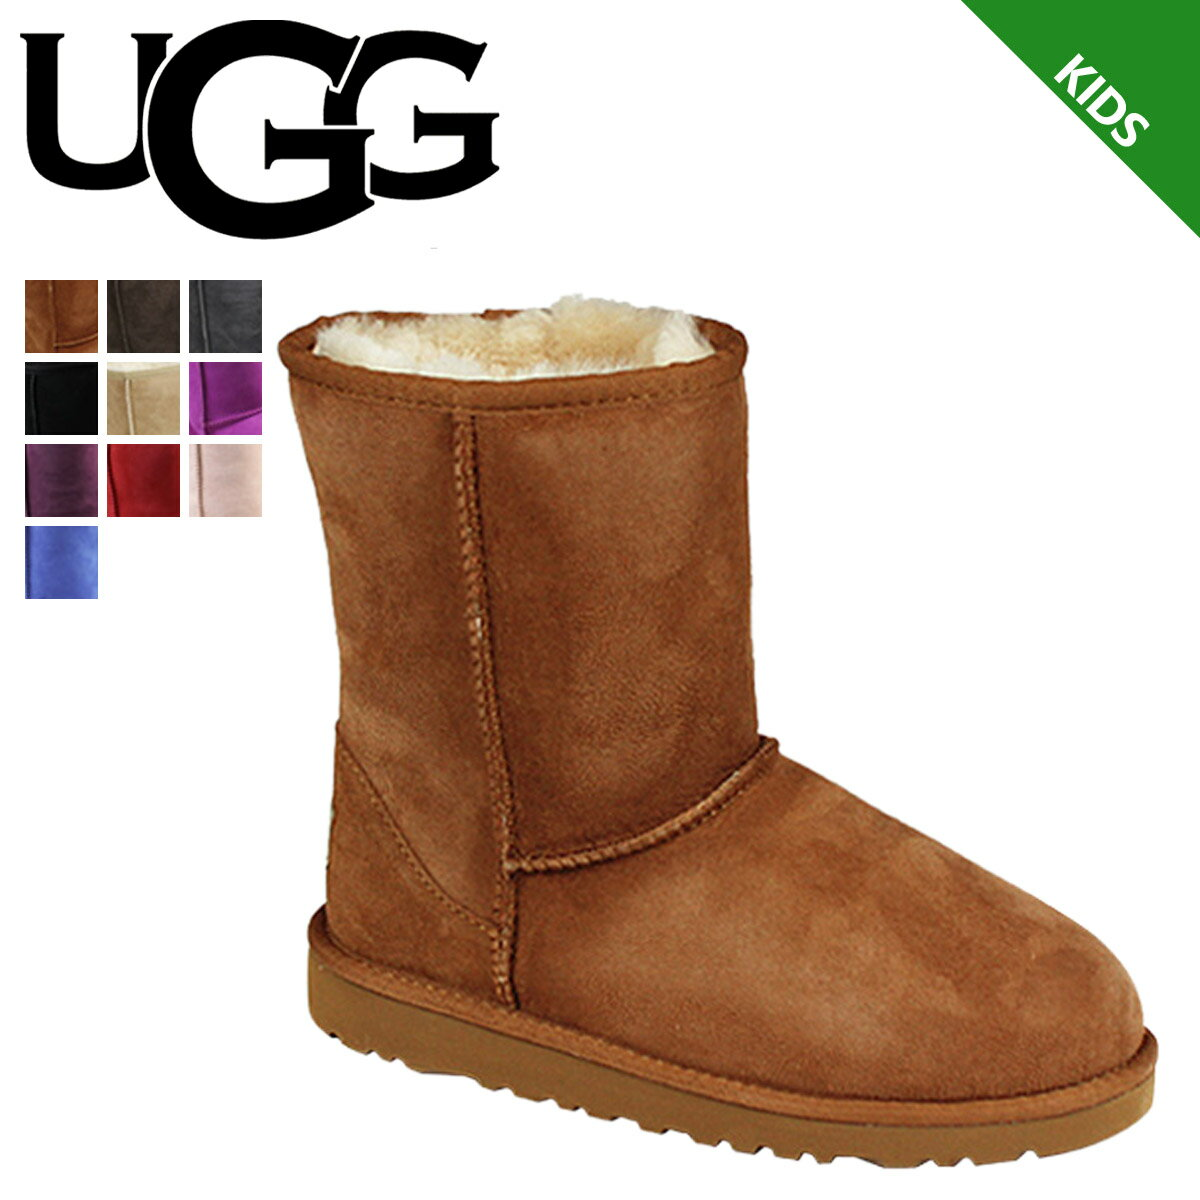 coloring ugg boots division of global affairs